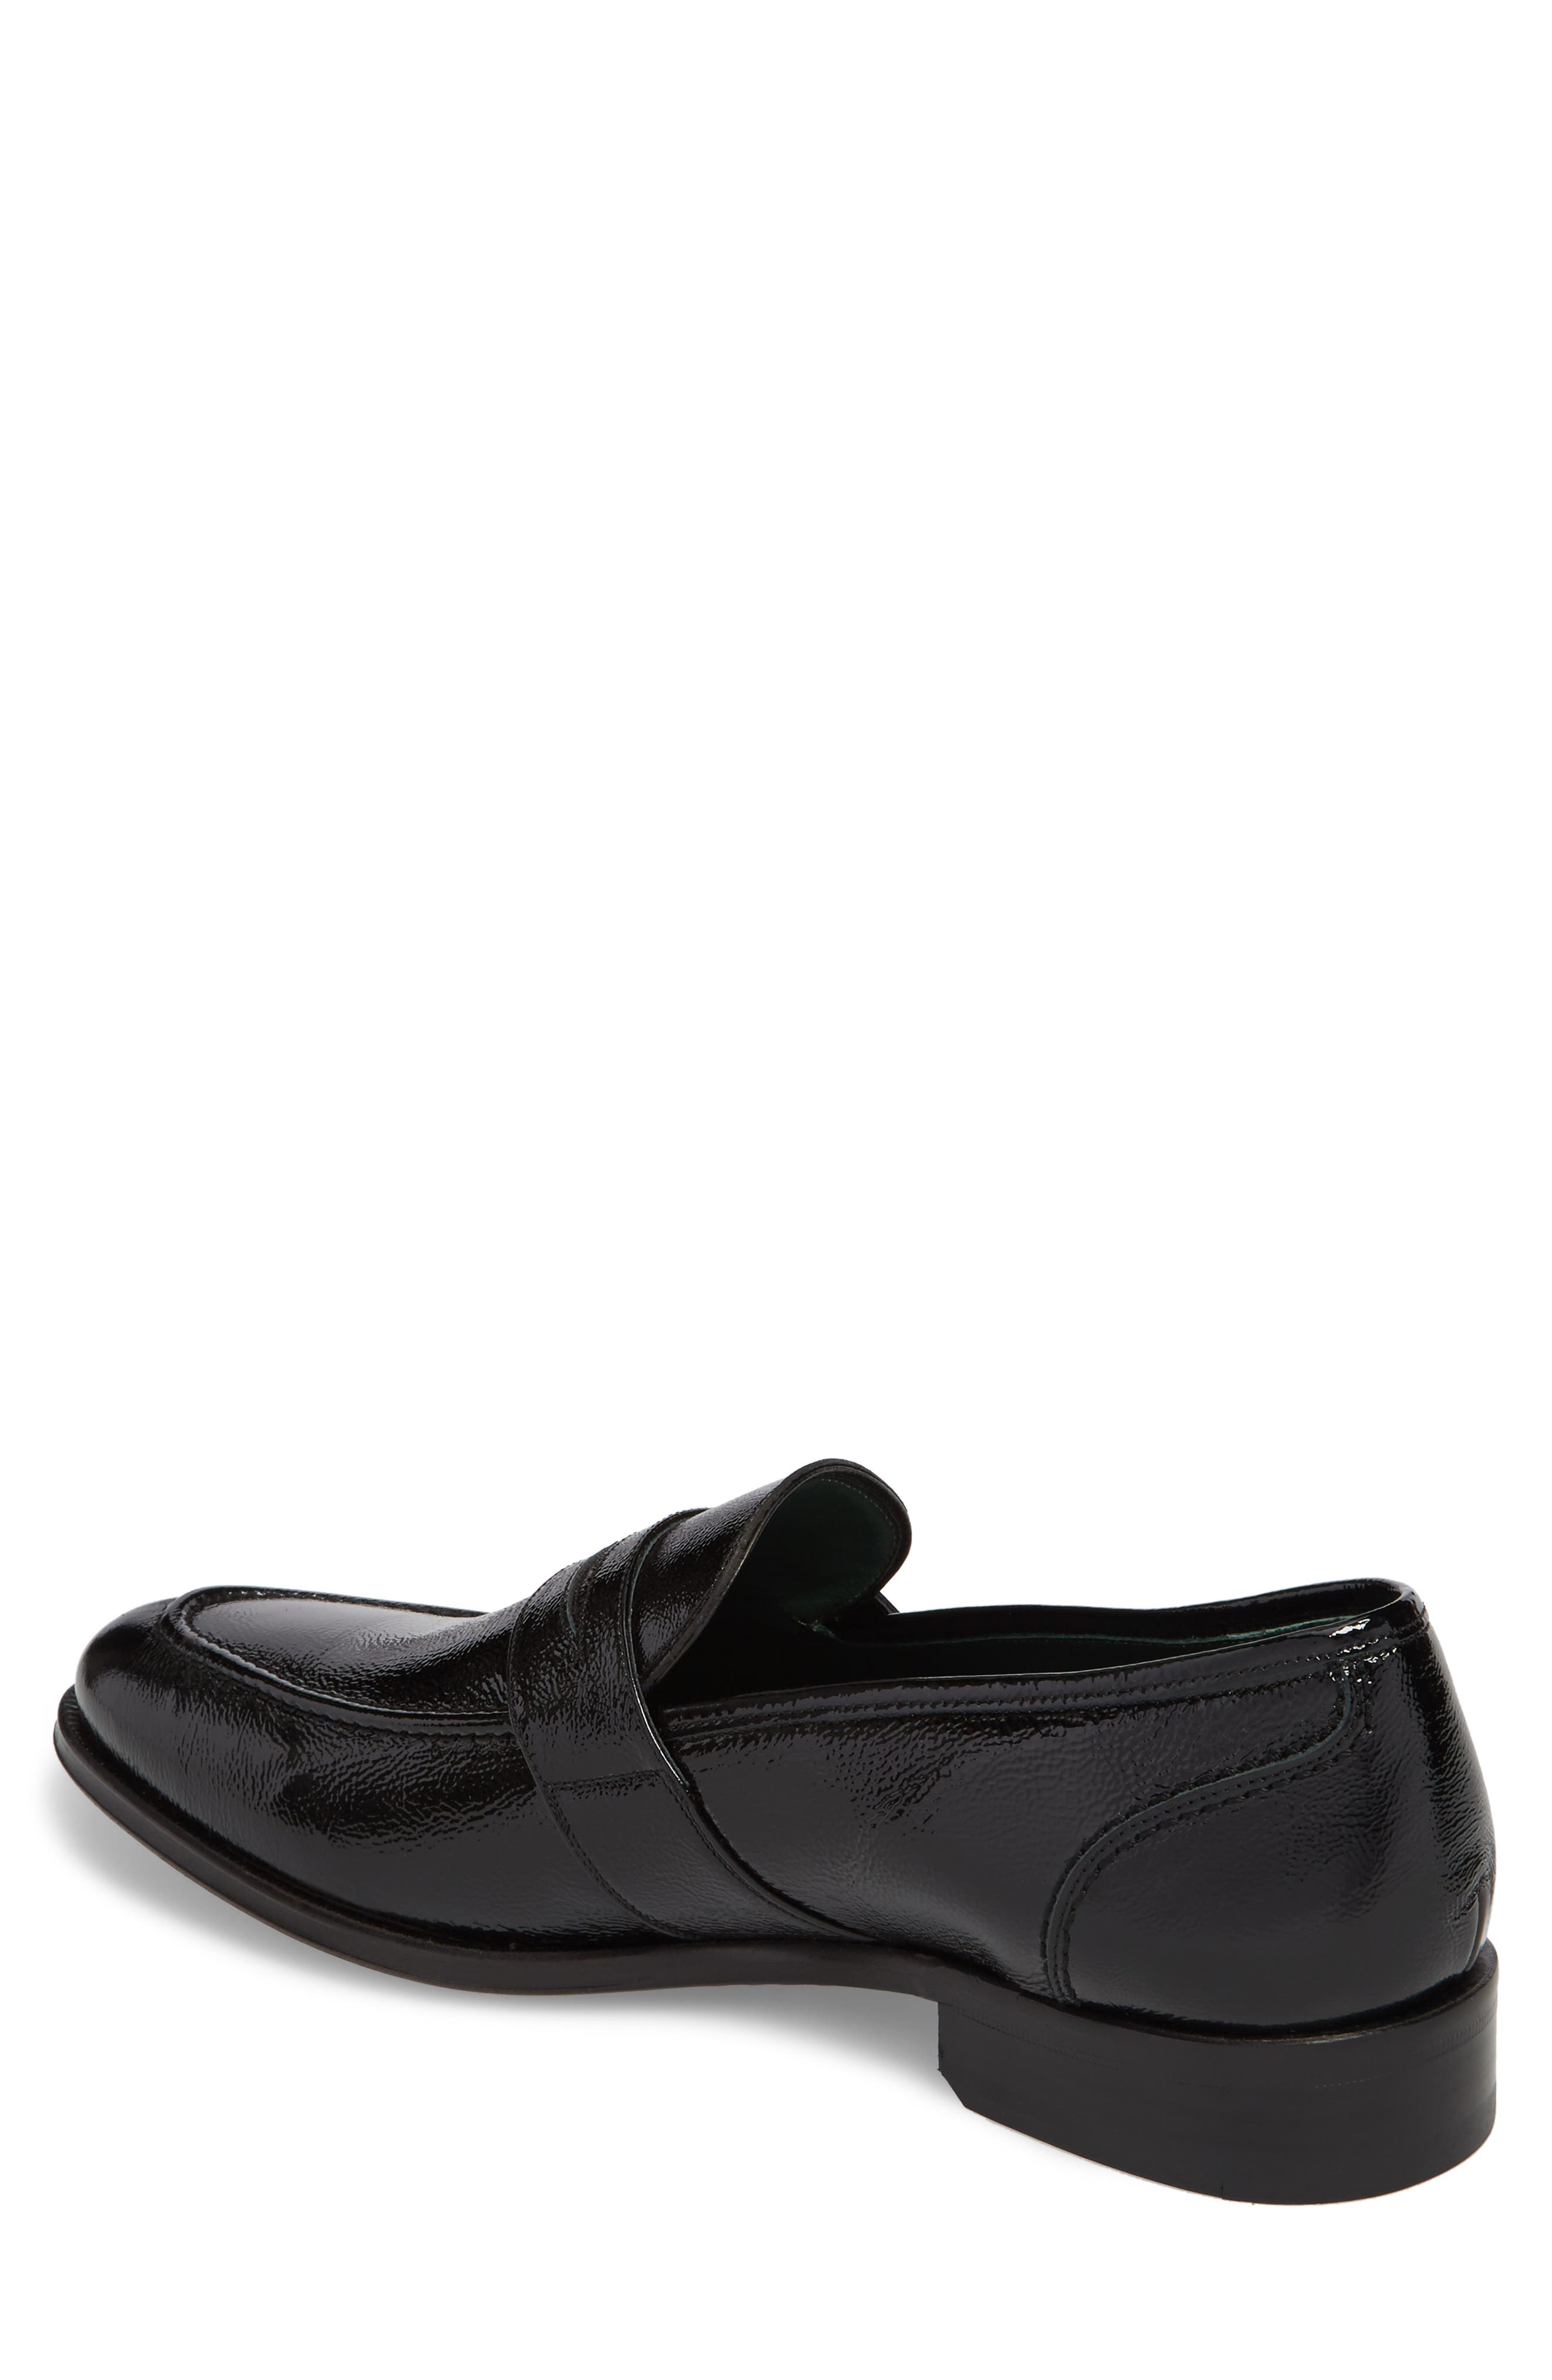 Argos Penny Loafer,                             Alternate thumbnail 2, color,                             Black Patent Leather